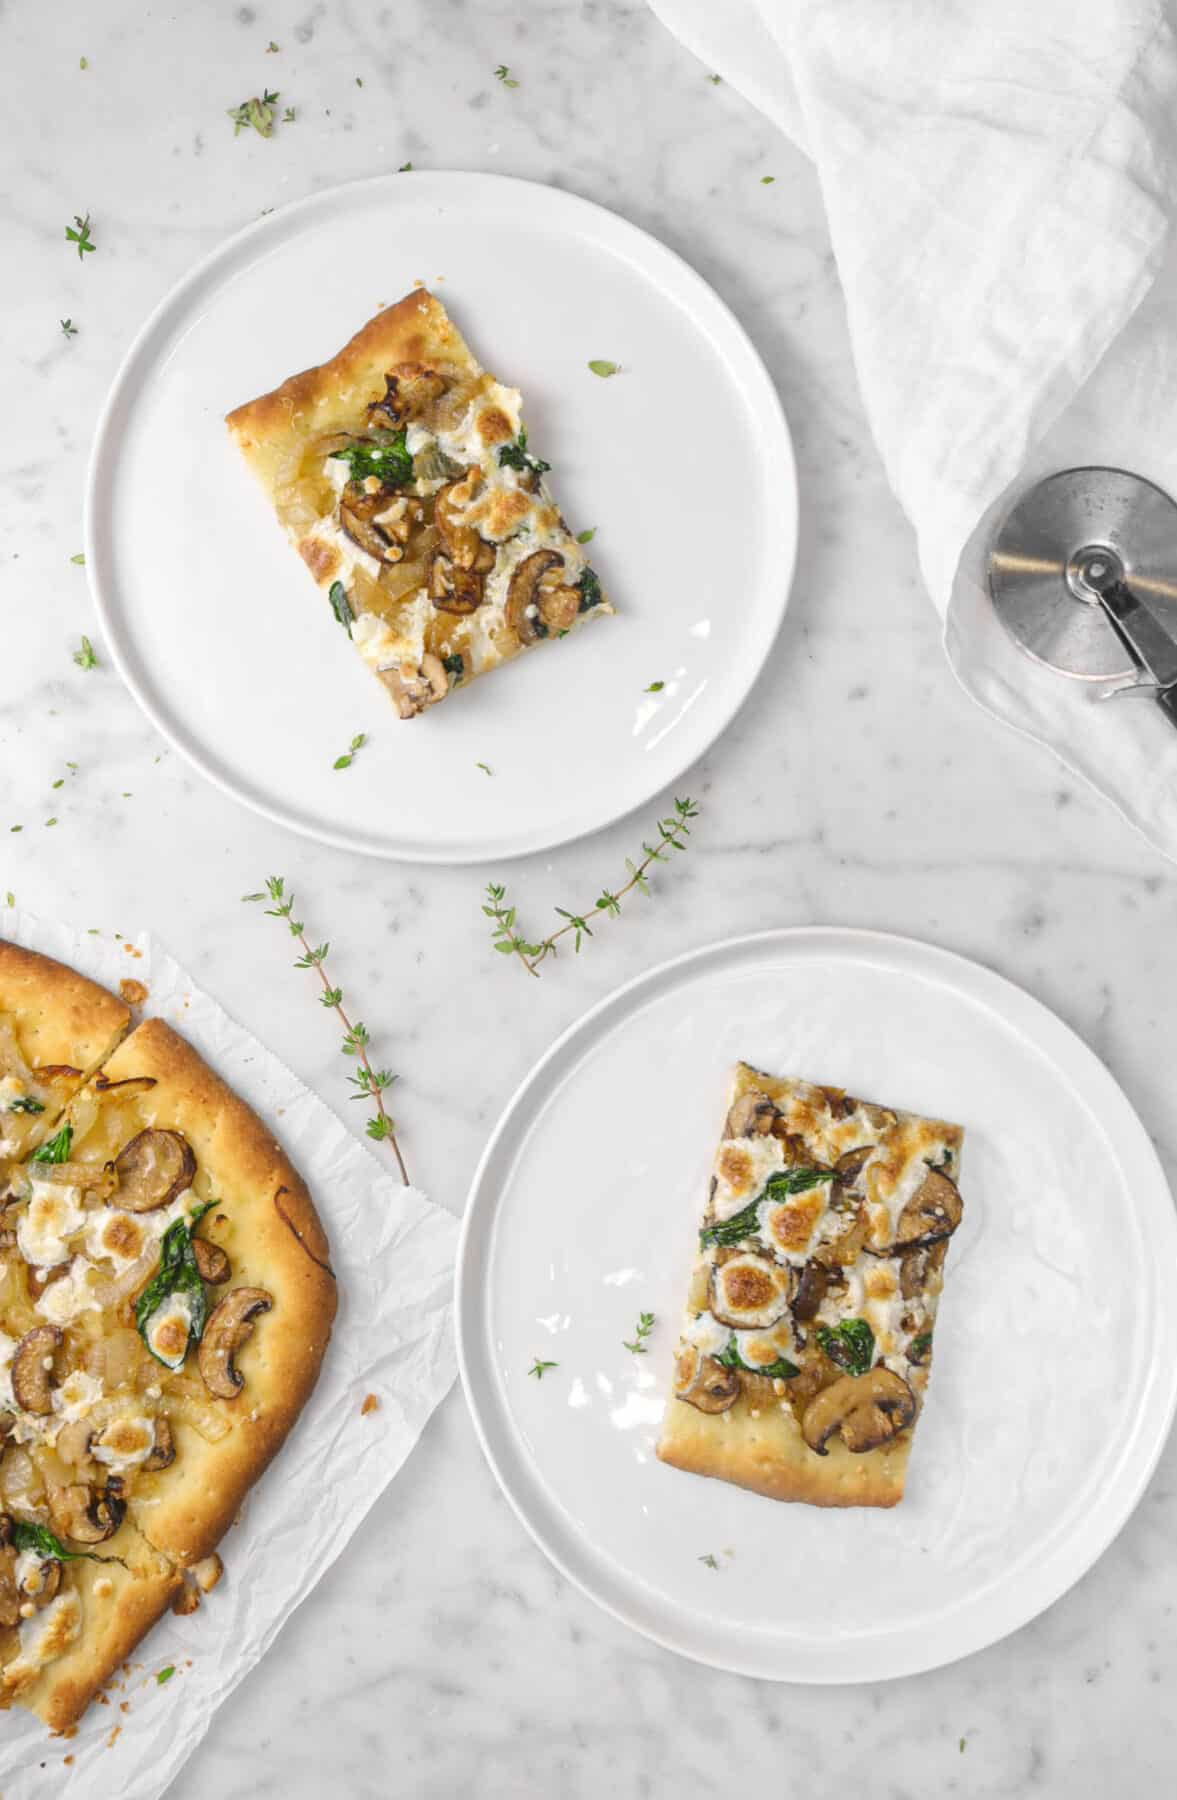 two slices of mushroom flatbread on white plates with thyme sprigs and napkin